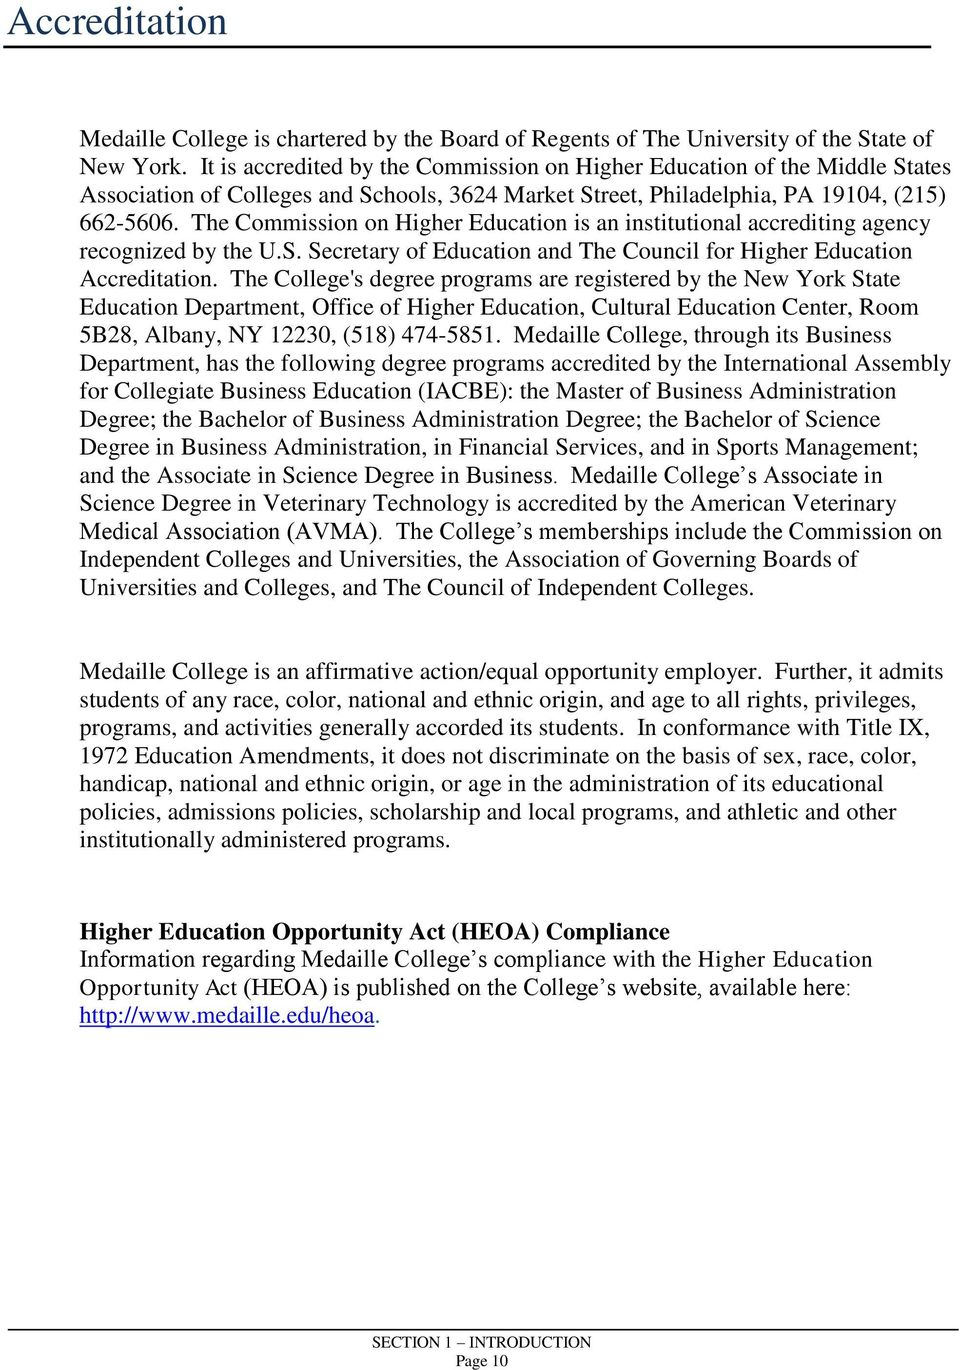 The Commission on Higher Education is an institutional accrediting agency recognized by the U.S. Secretary of Education and The Council for Higher Education Accreditation.